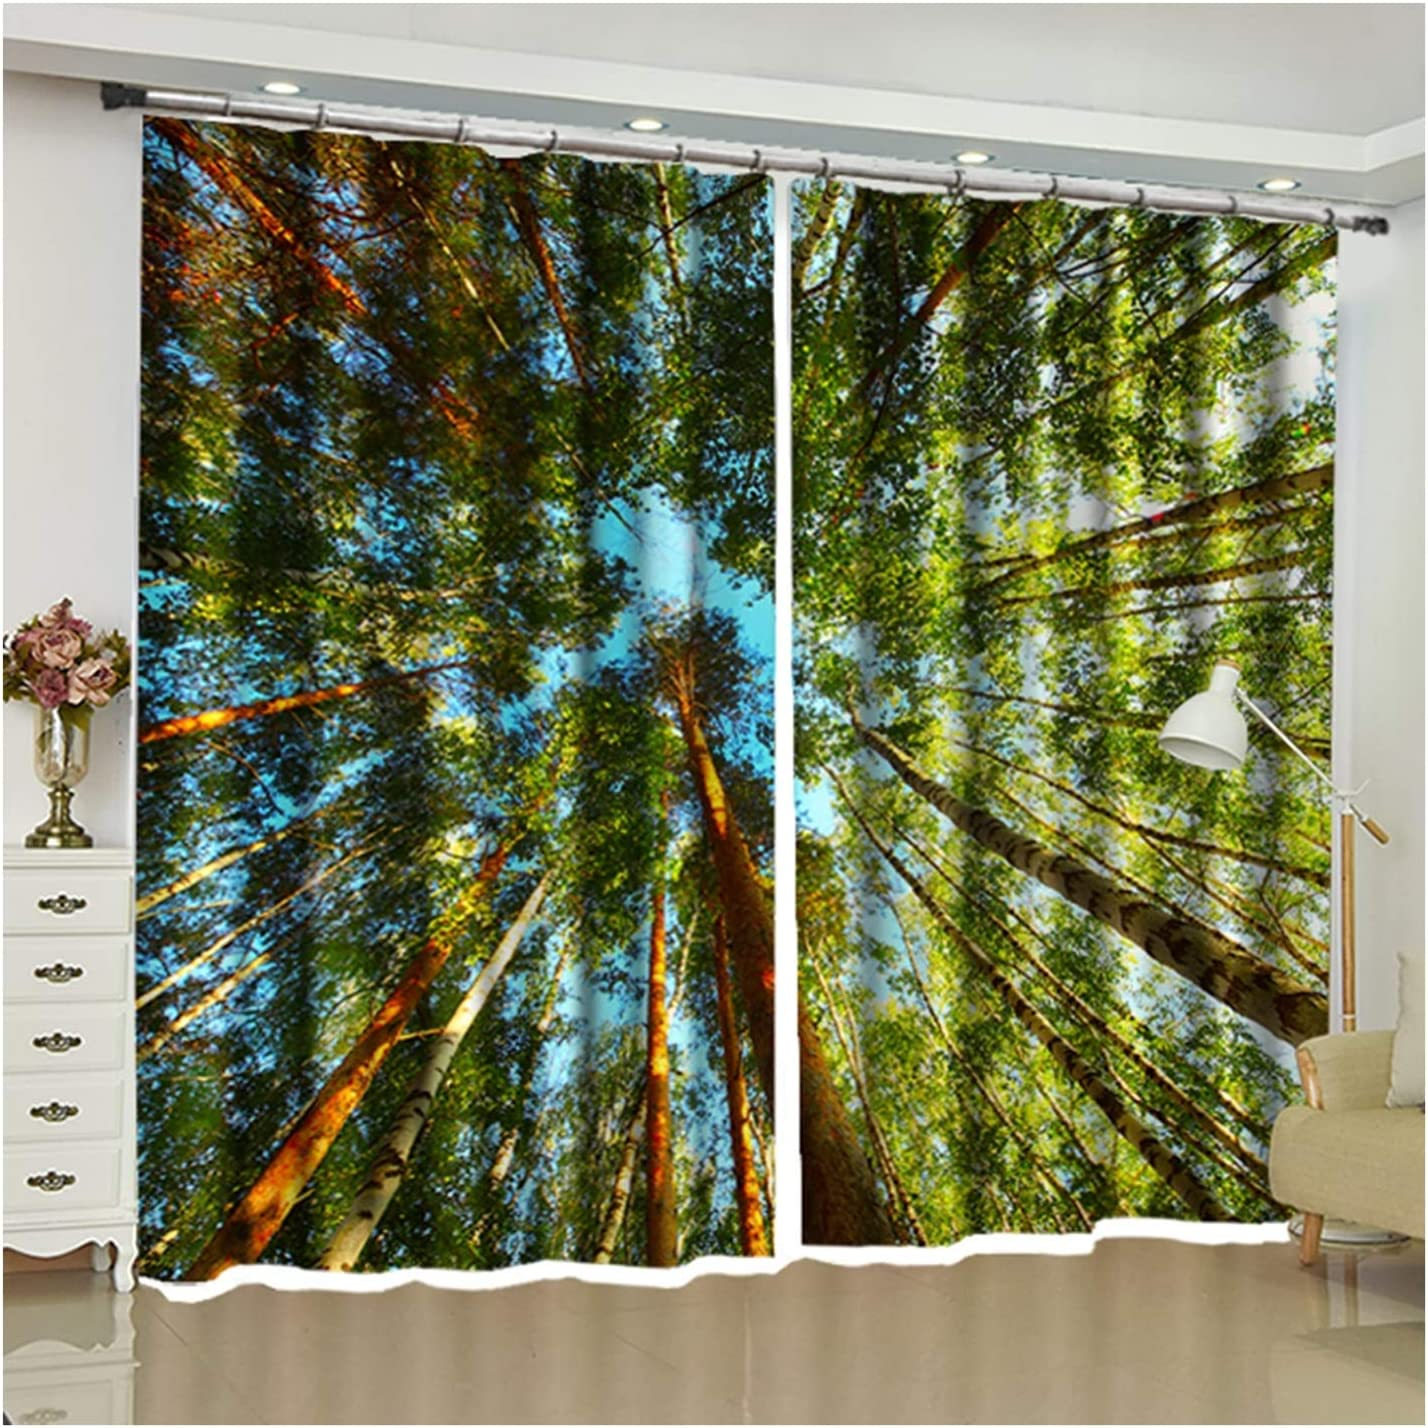 Daesar Curtain for Living Room Modern S Large discharge sale Louisville-Jefferson County Mall Curtains 2 Window Panel